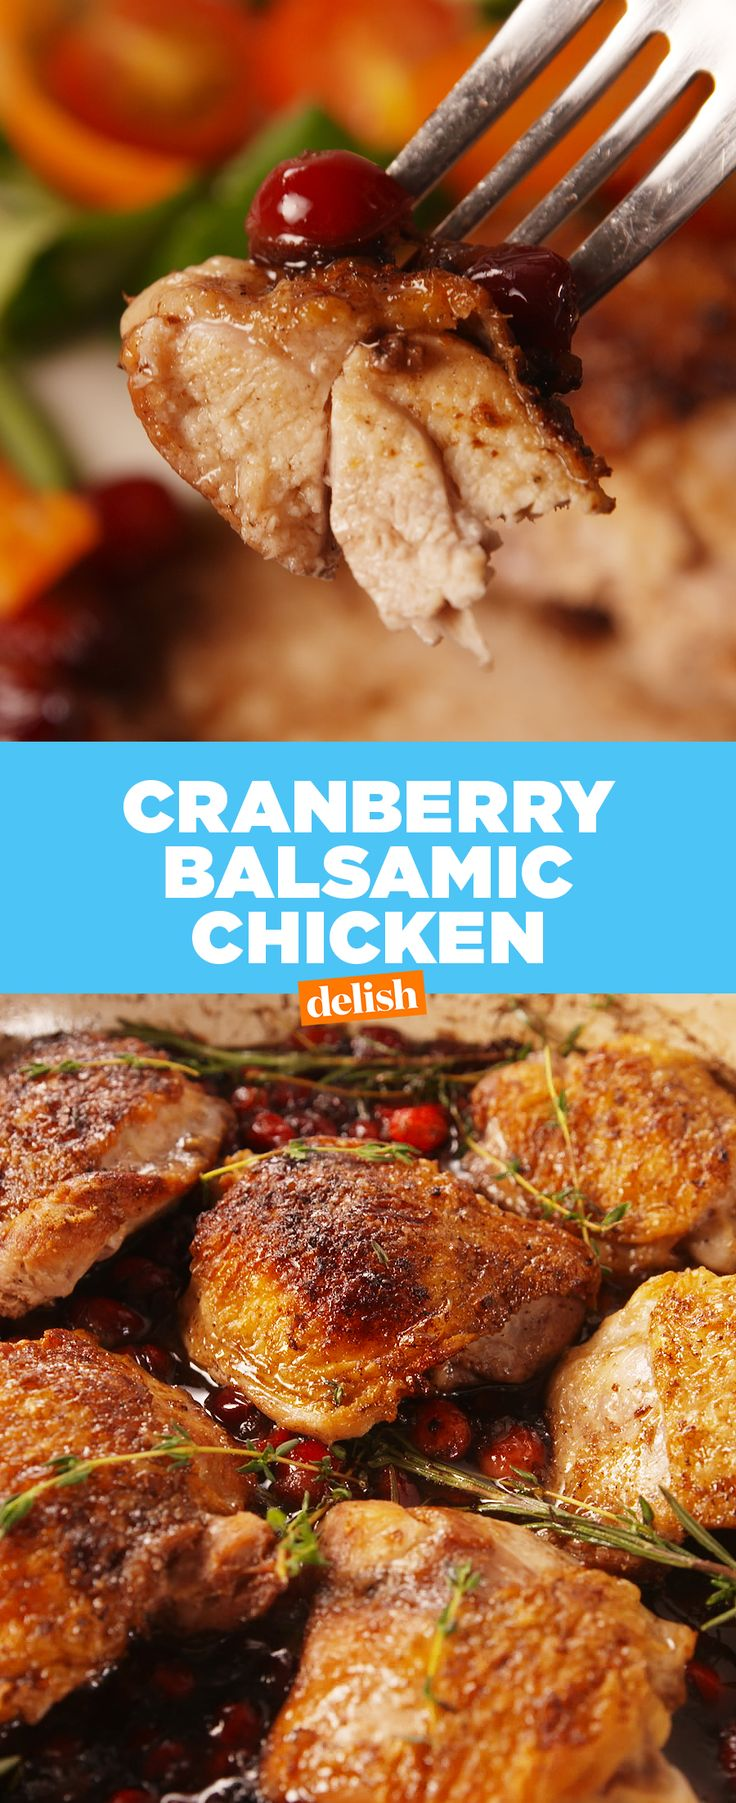 Cranberry Balsamic Chicken | This is the chicken recipe you'll be making all season long. Serves 6